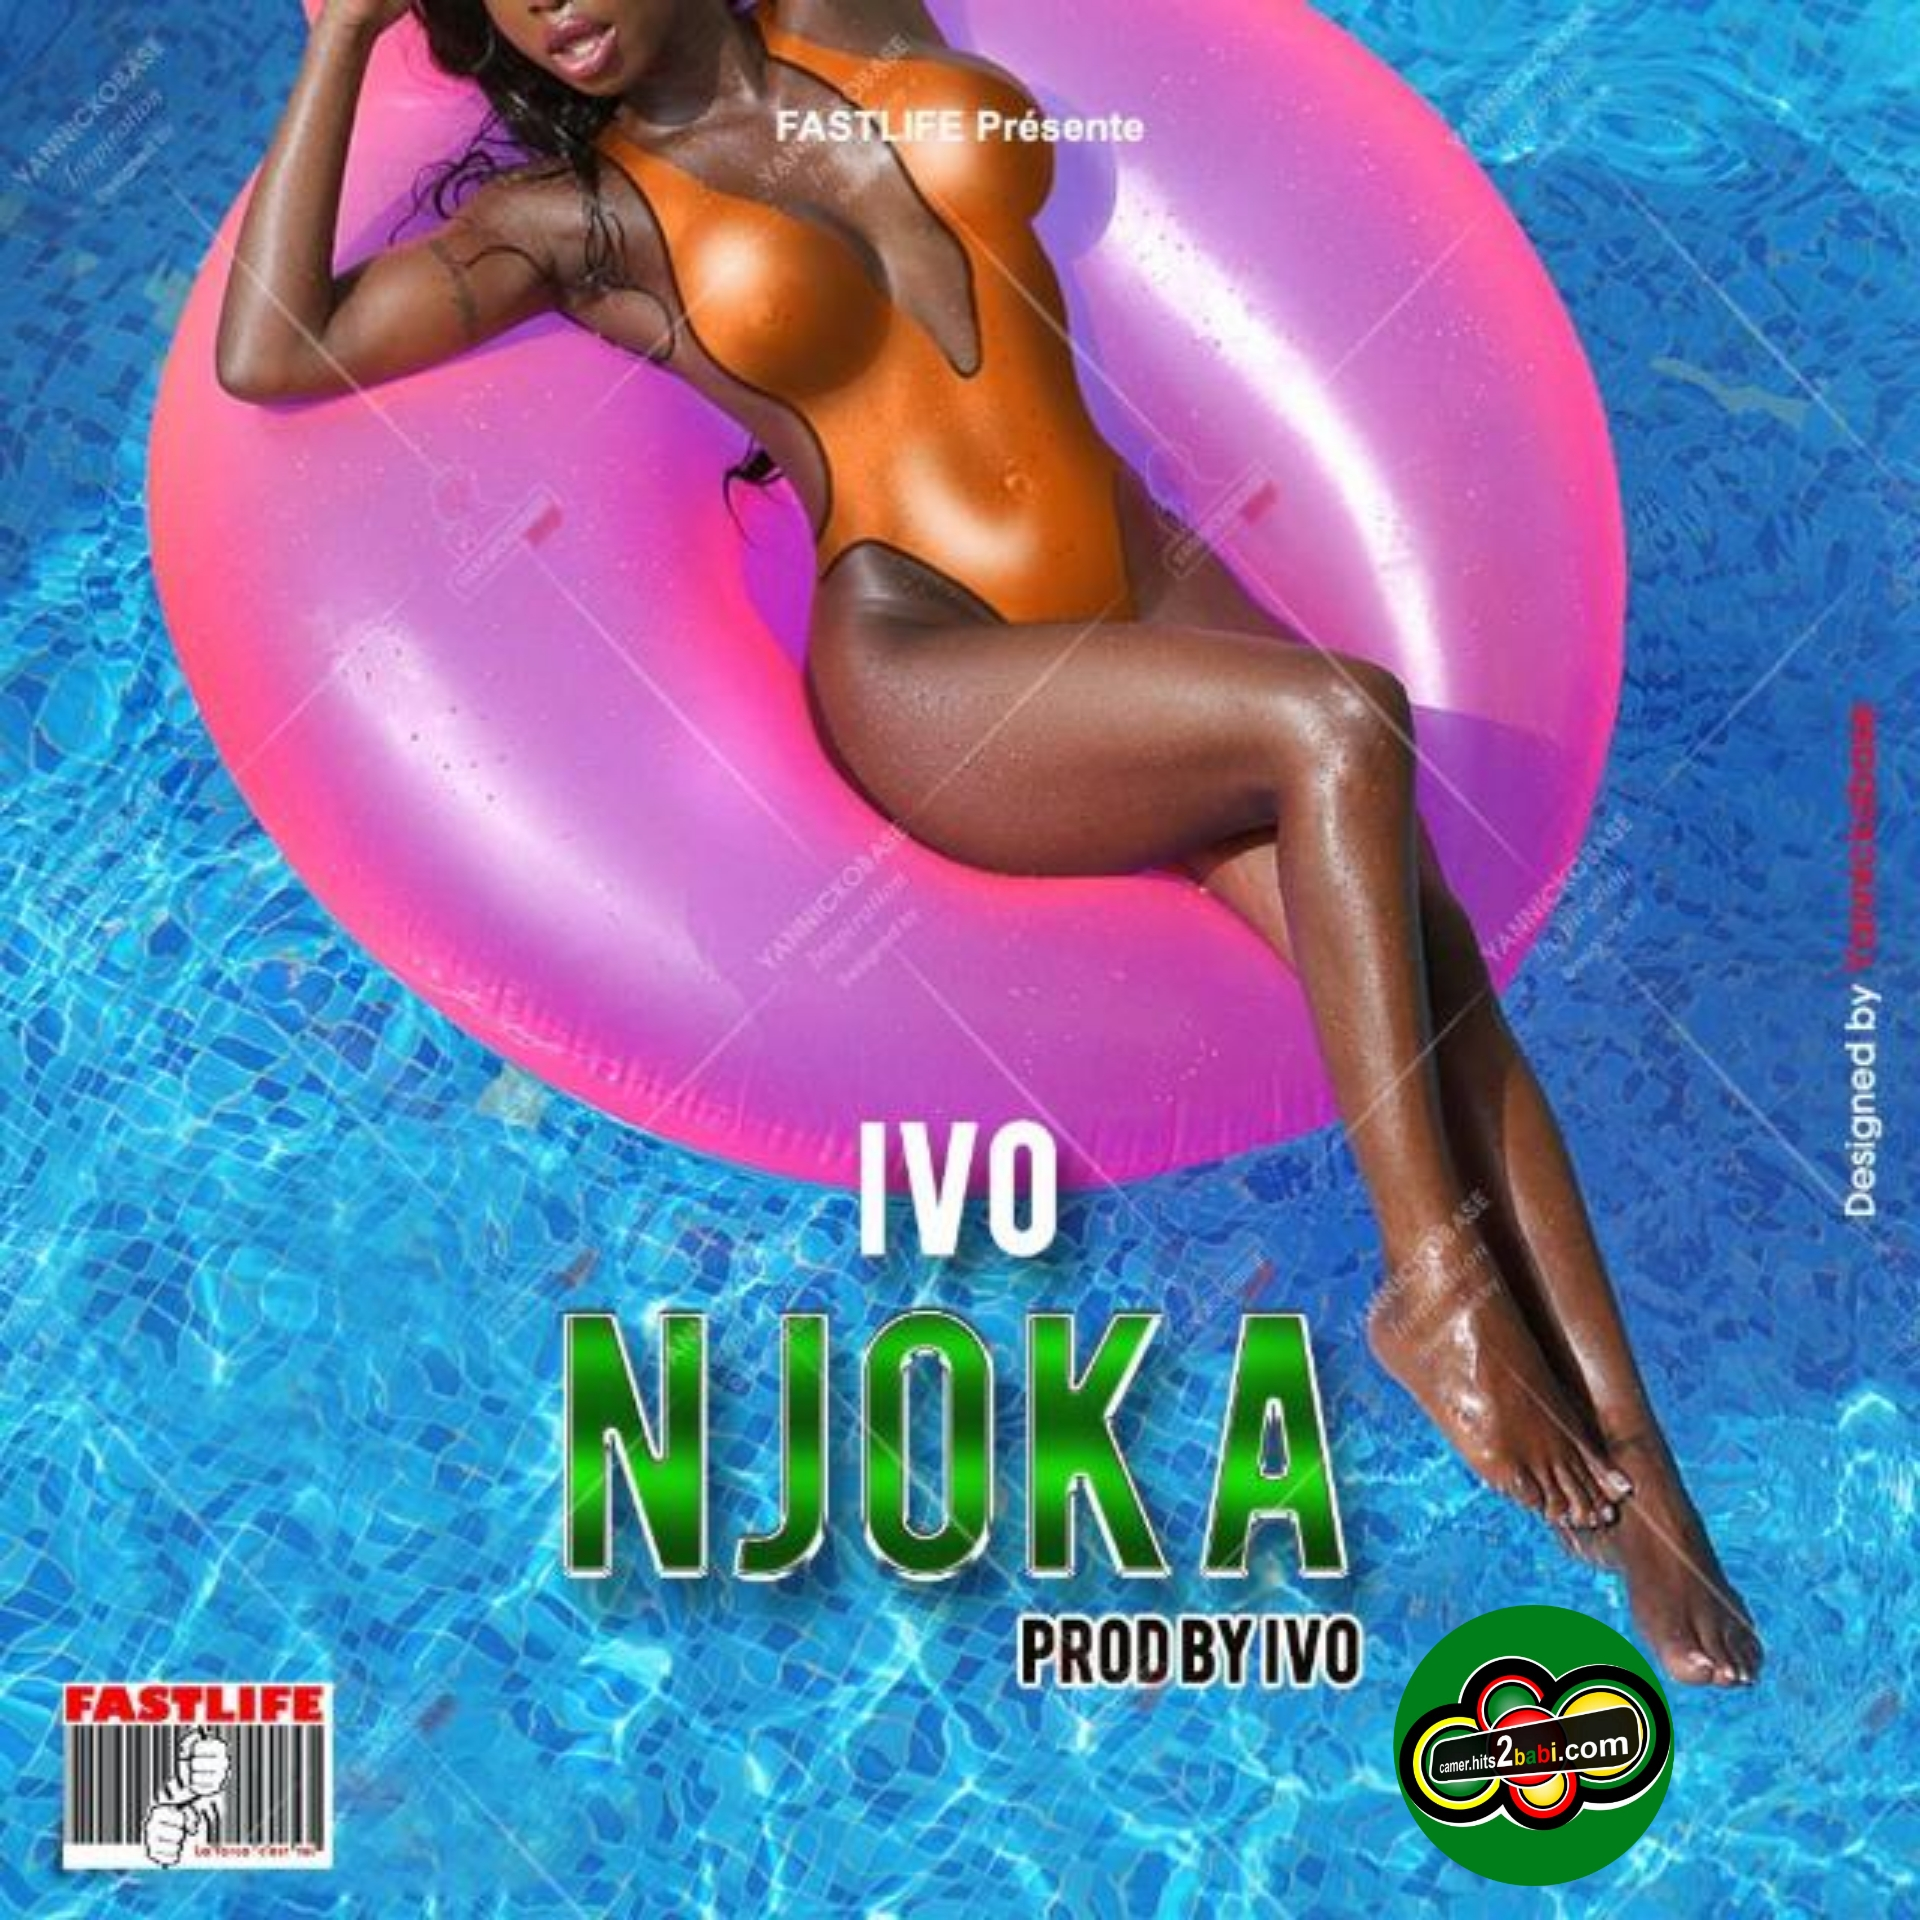 I V O - Njoka ( Prod By I V O) Audio de Fastlife Officiel